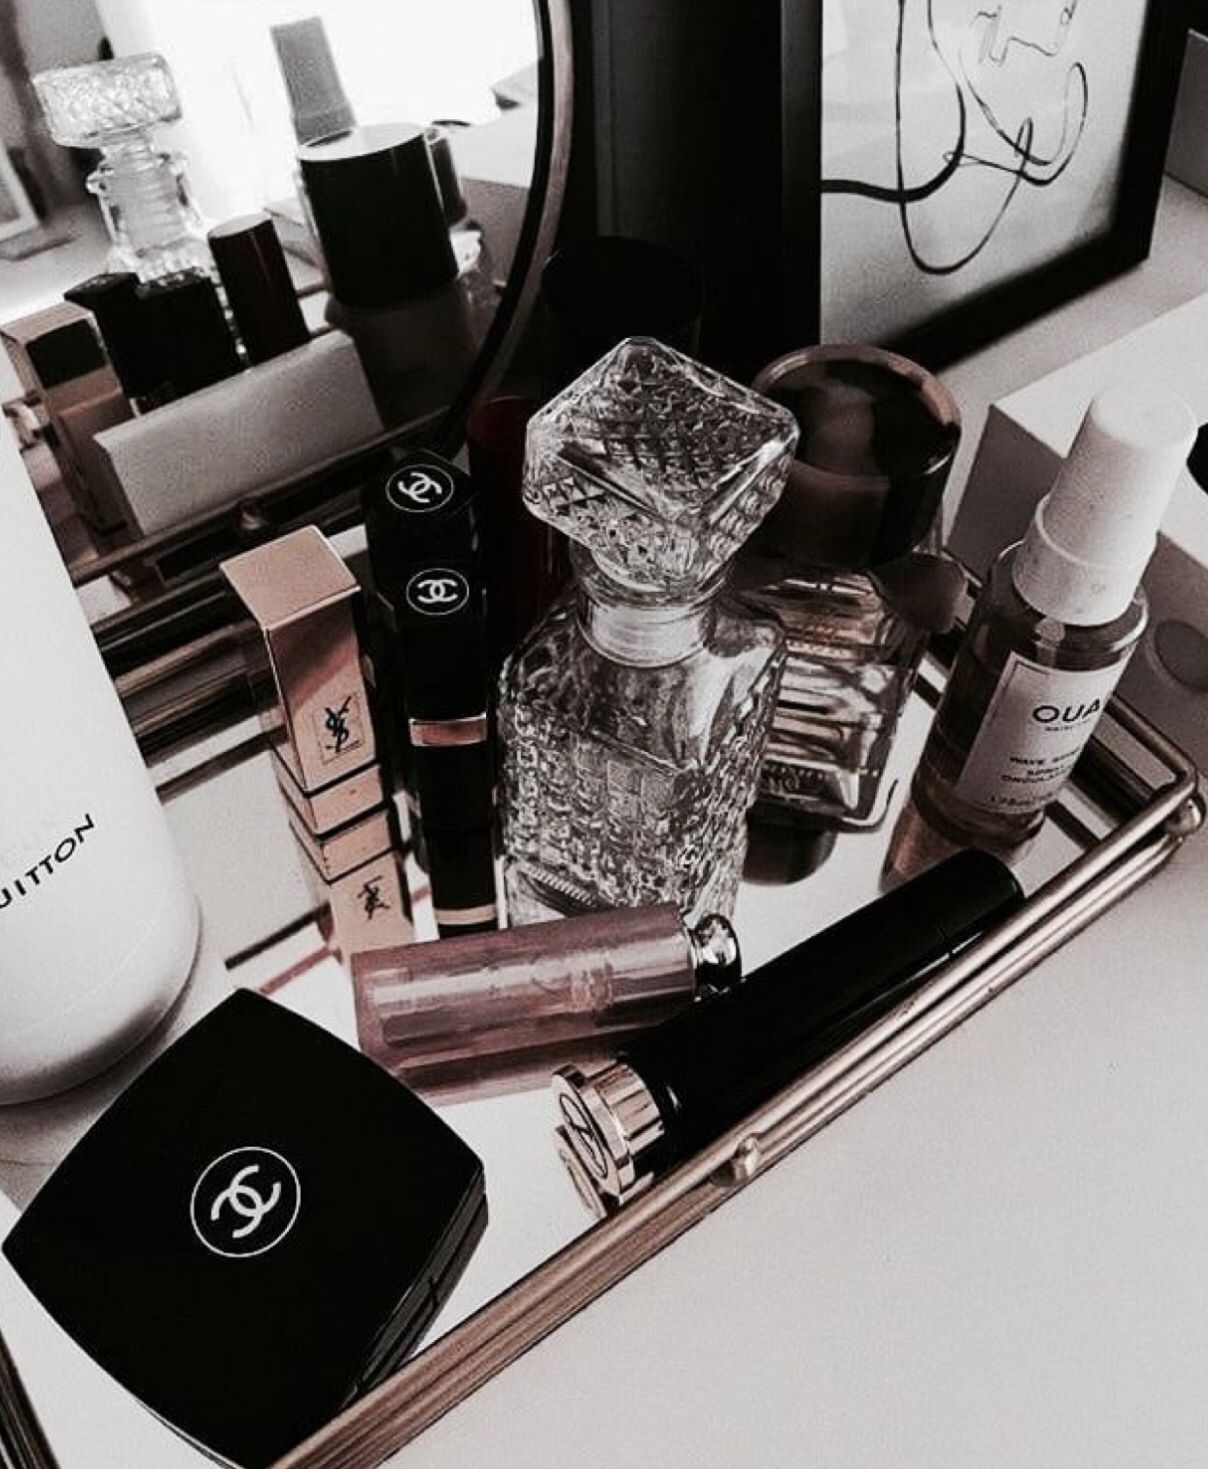 Pin by Justina Kišonaitė on Makeup Luxury makeup, Makeup